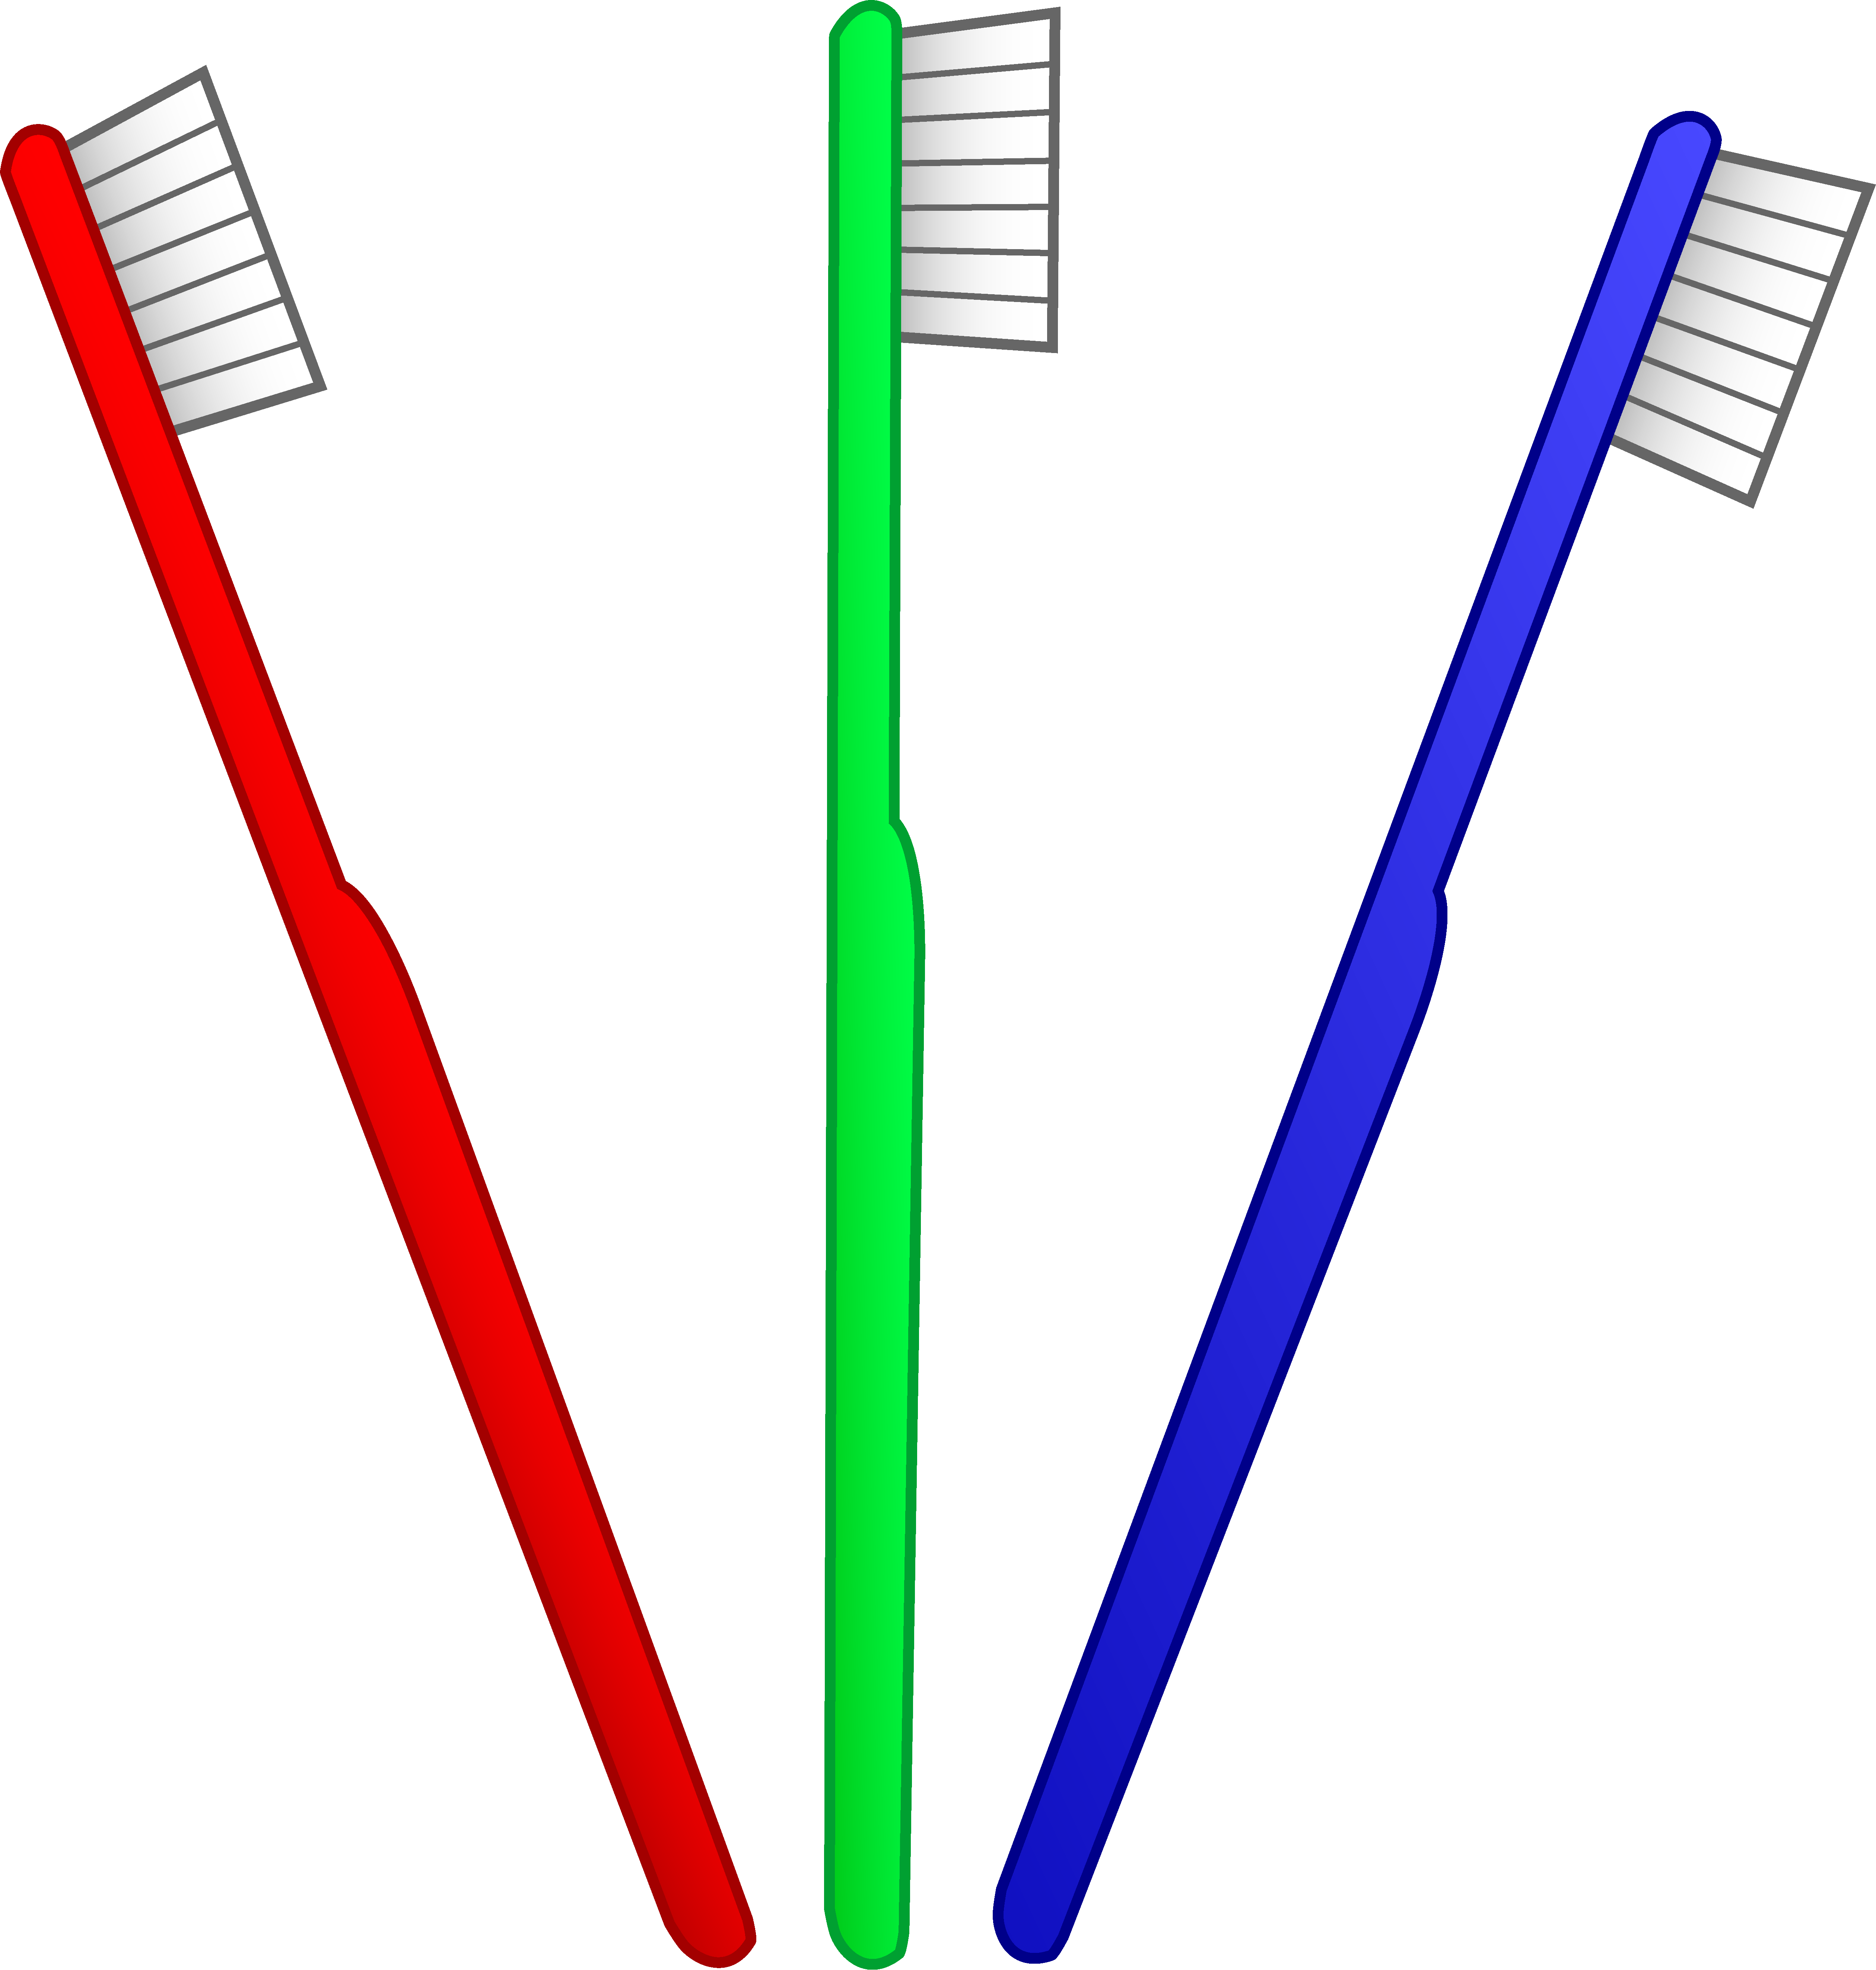 5038x5290 Best Toothbrush Clipart